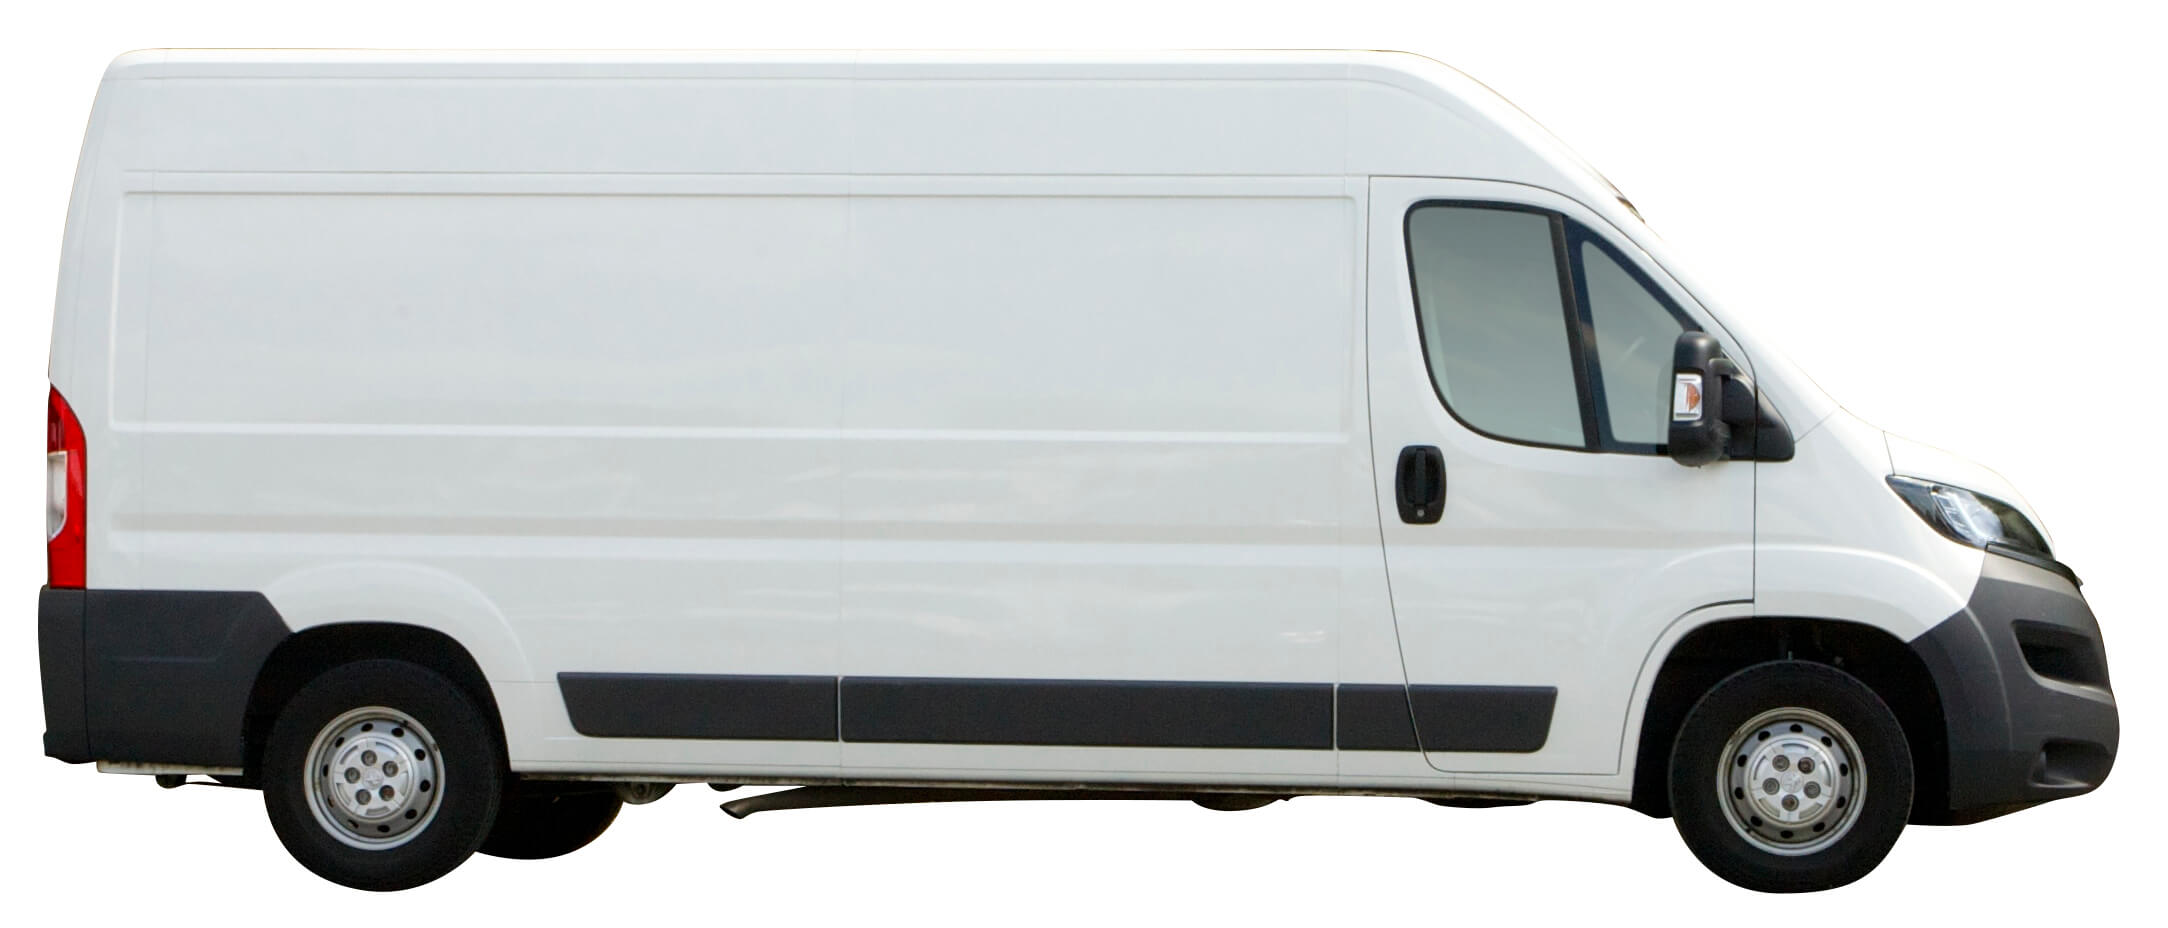 Long wheel base van